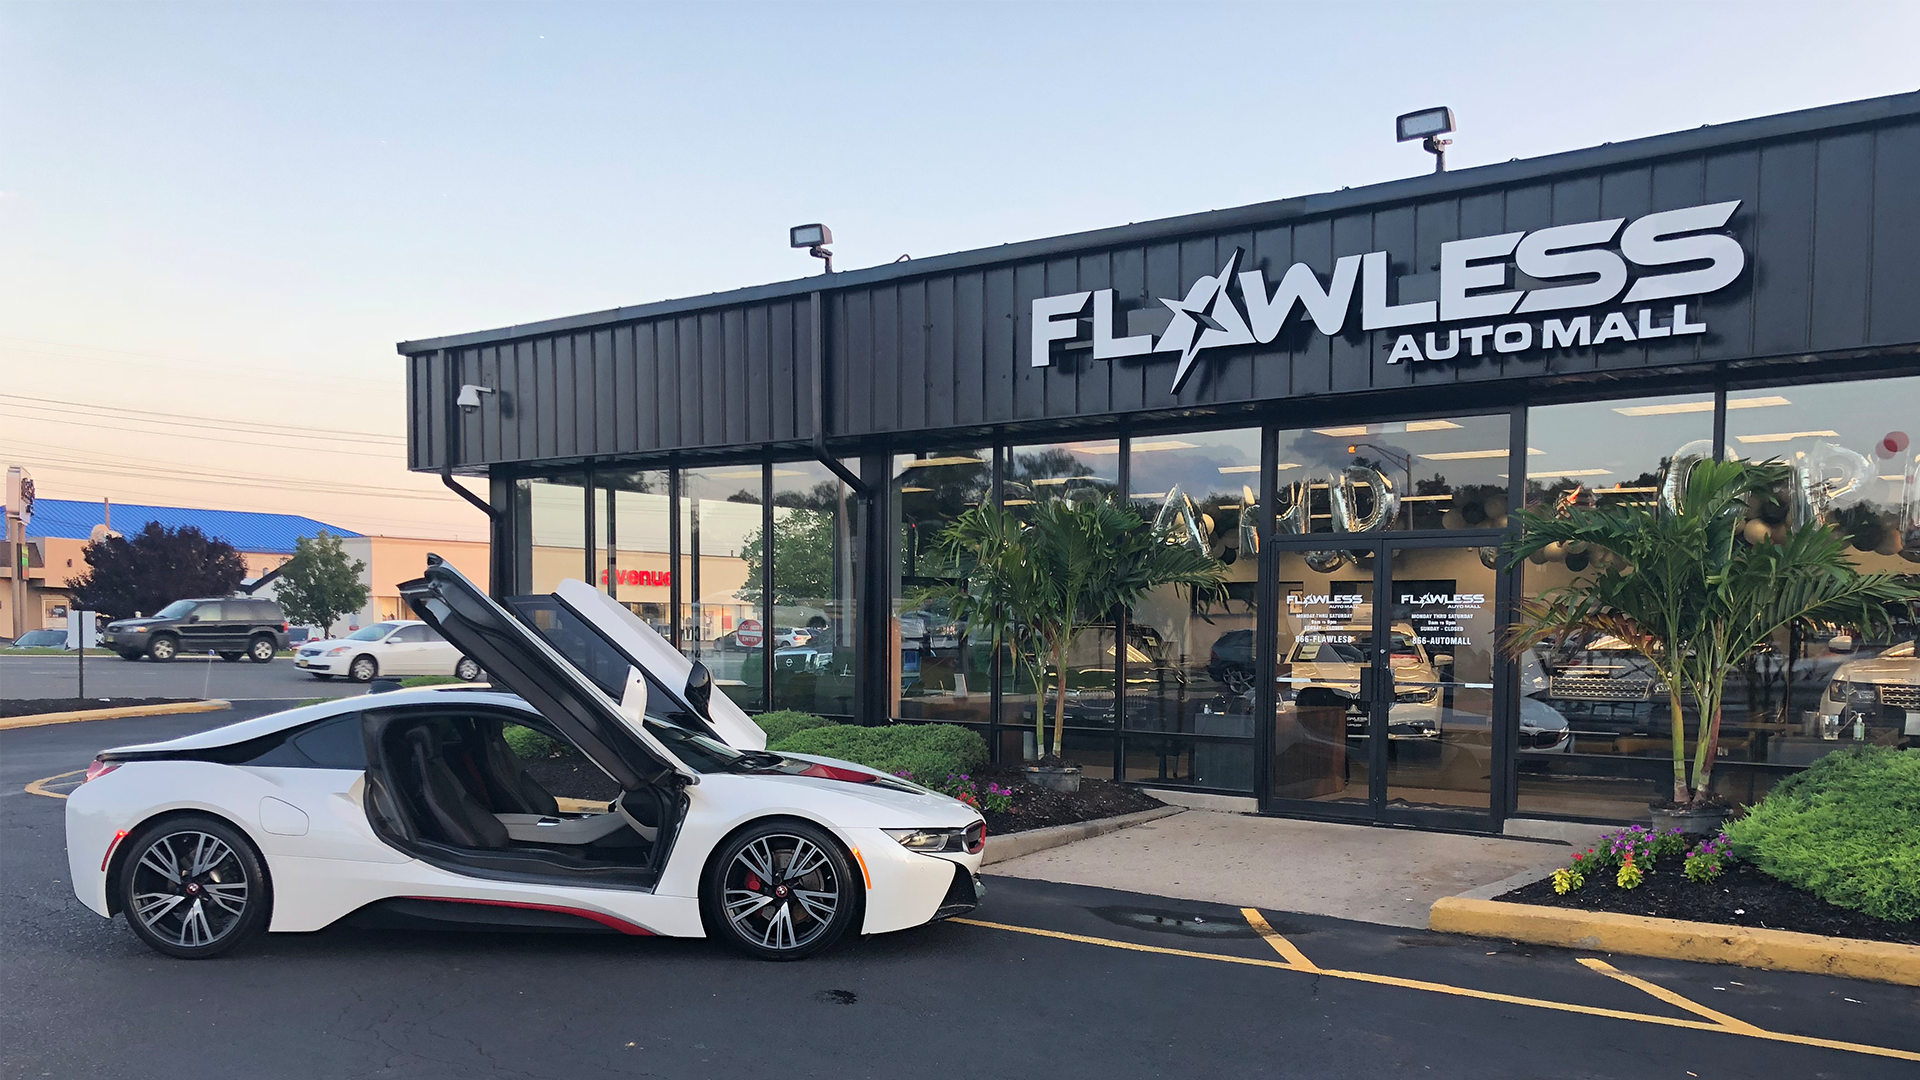 Flawless Auto Mall.